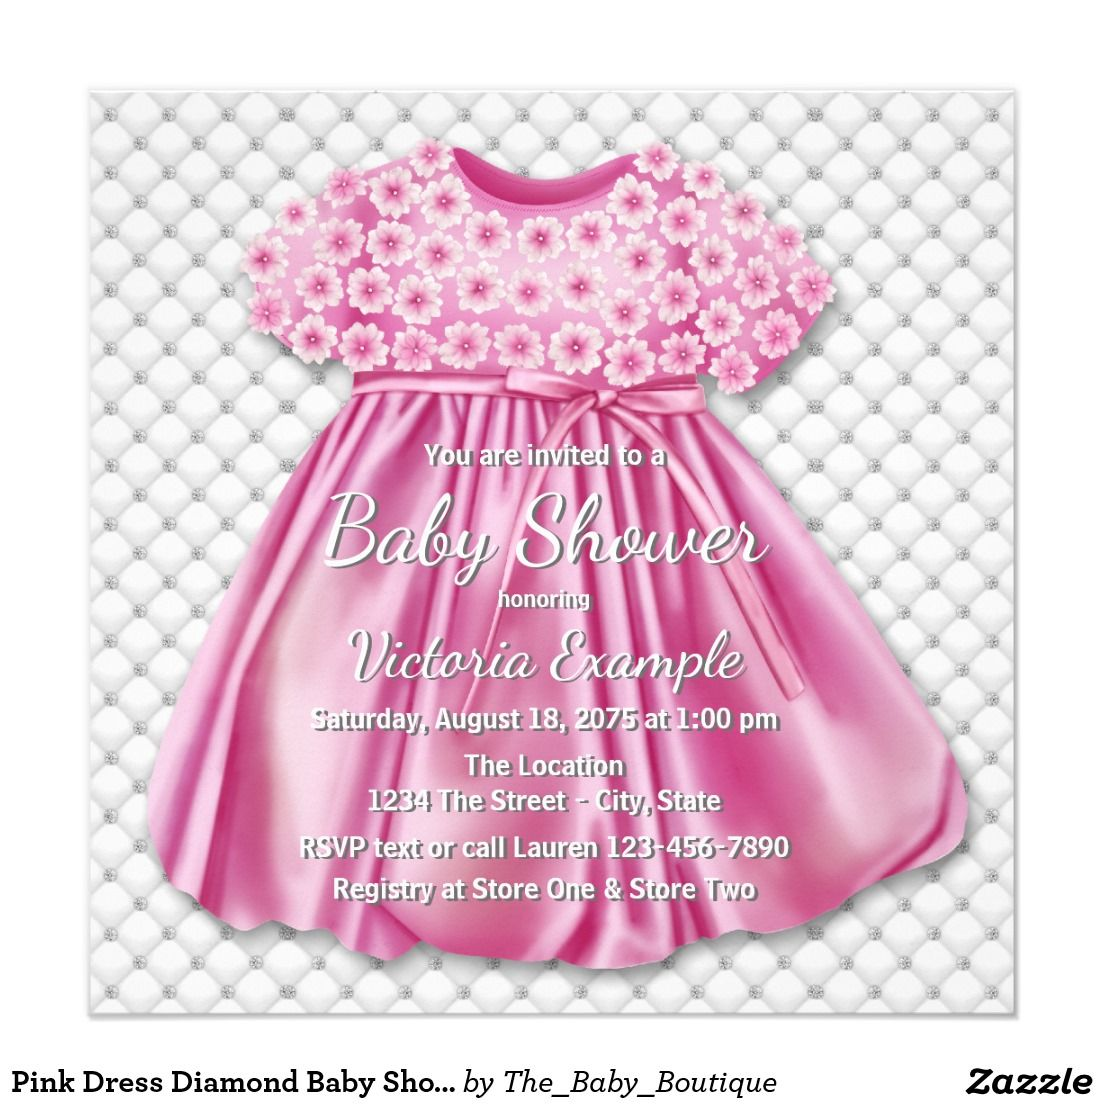 Pink dress in store  Pink Dress Diamond Baby Shower Card  Girl Baby Shower  Pinterest